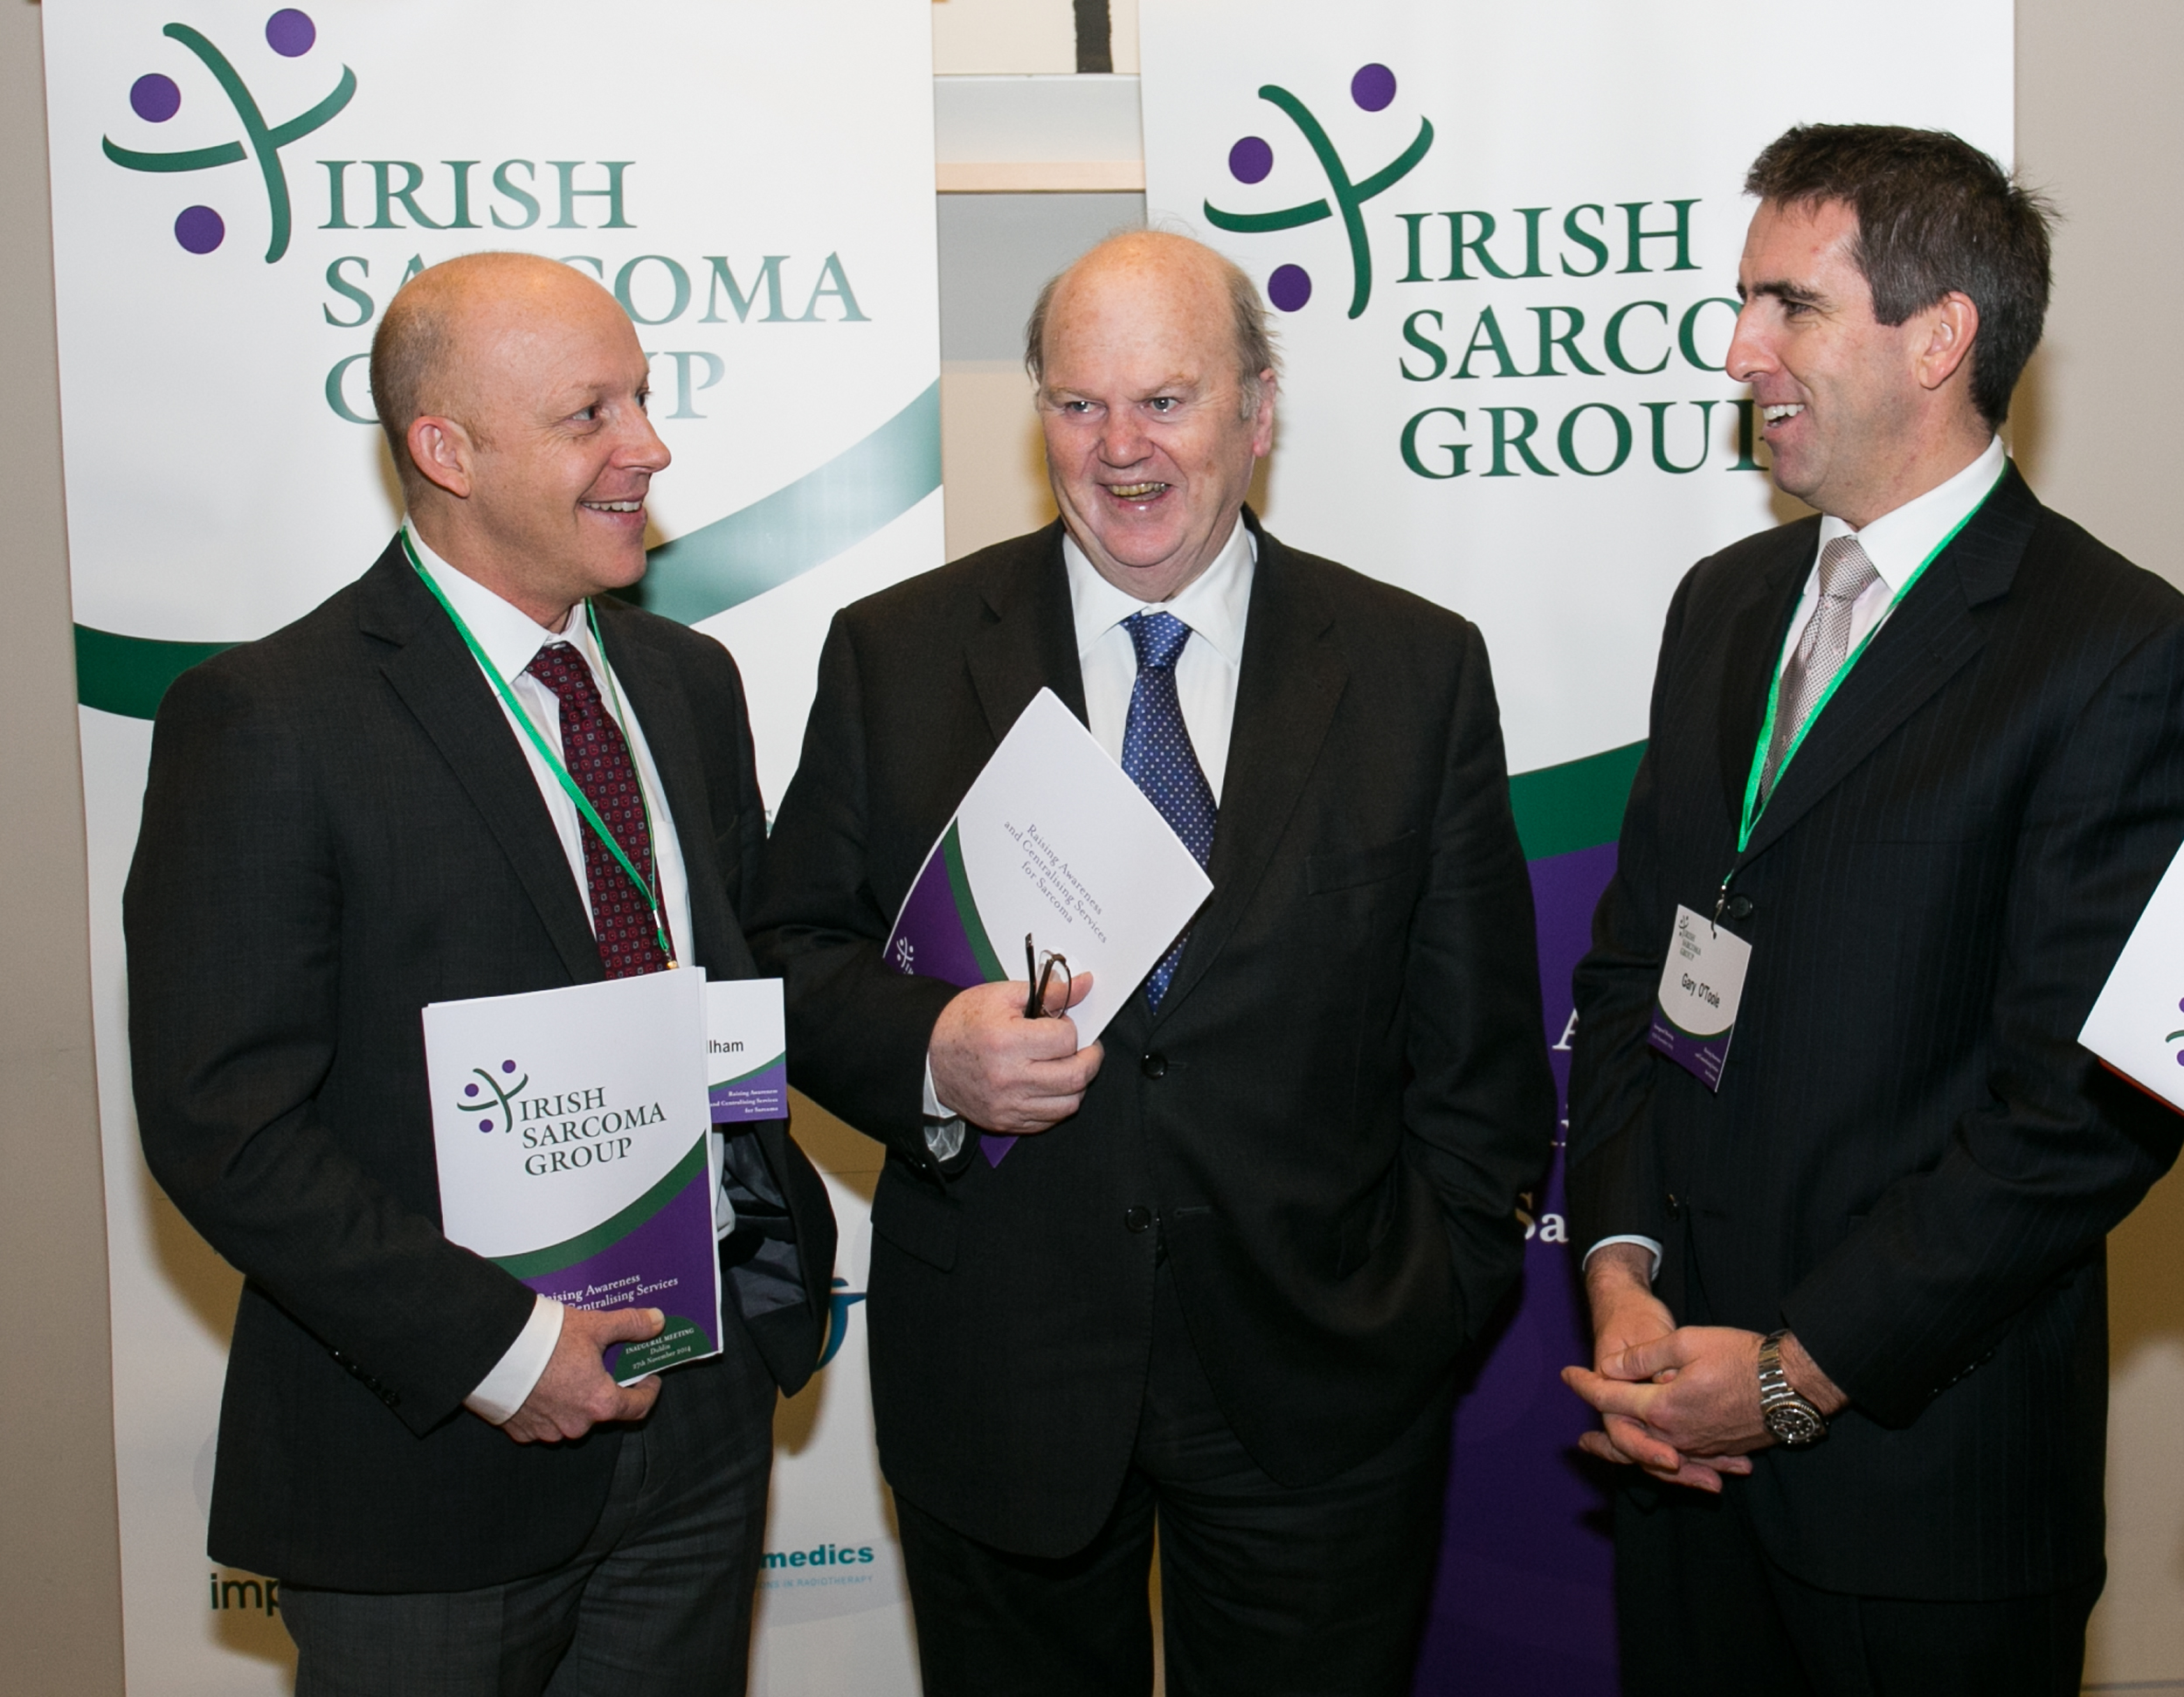 Dr Charles Gillham, Radiation Oncologist, St Luke's Radiation Oncology Network. , Michael Noonan, TD, Mr Gary O'Toole, Orthopaedic Surgeon, St Vincent's, Cappagh and the Beacon Hospital.